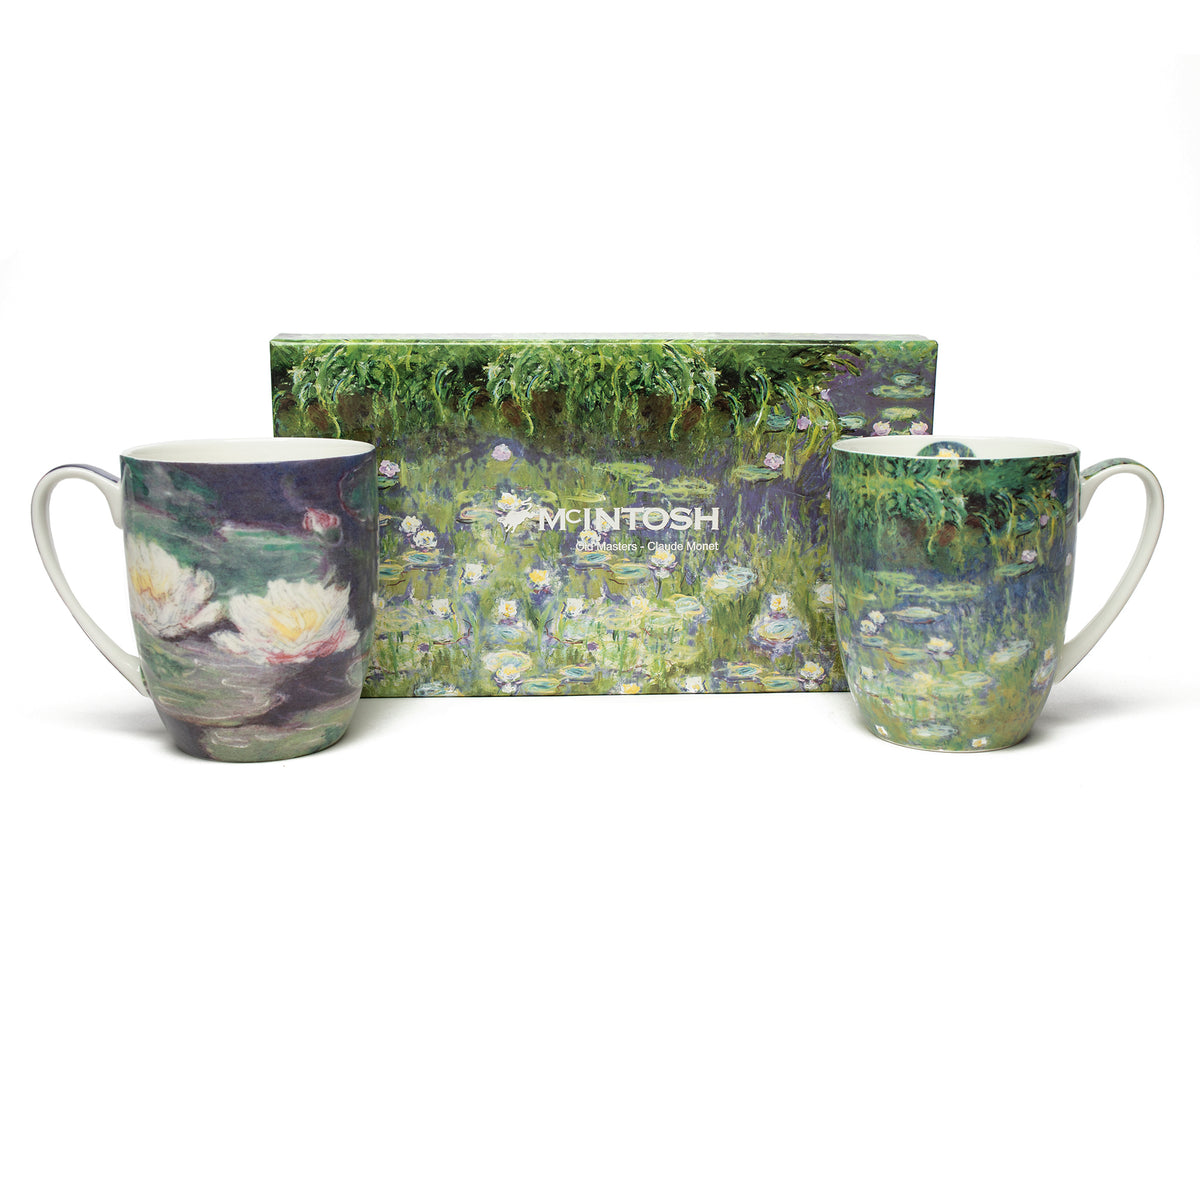 Pair of Fine Bone China Mugs featuring Monet's Water Lilies with gift box | Getty Store